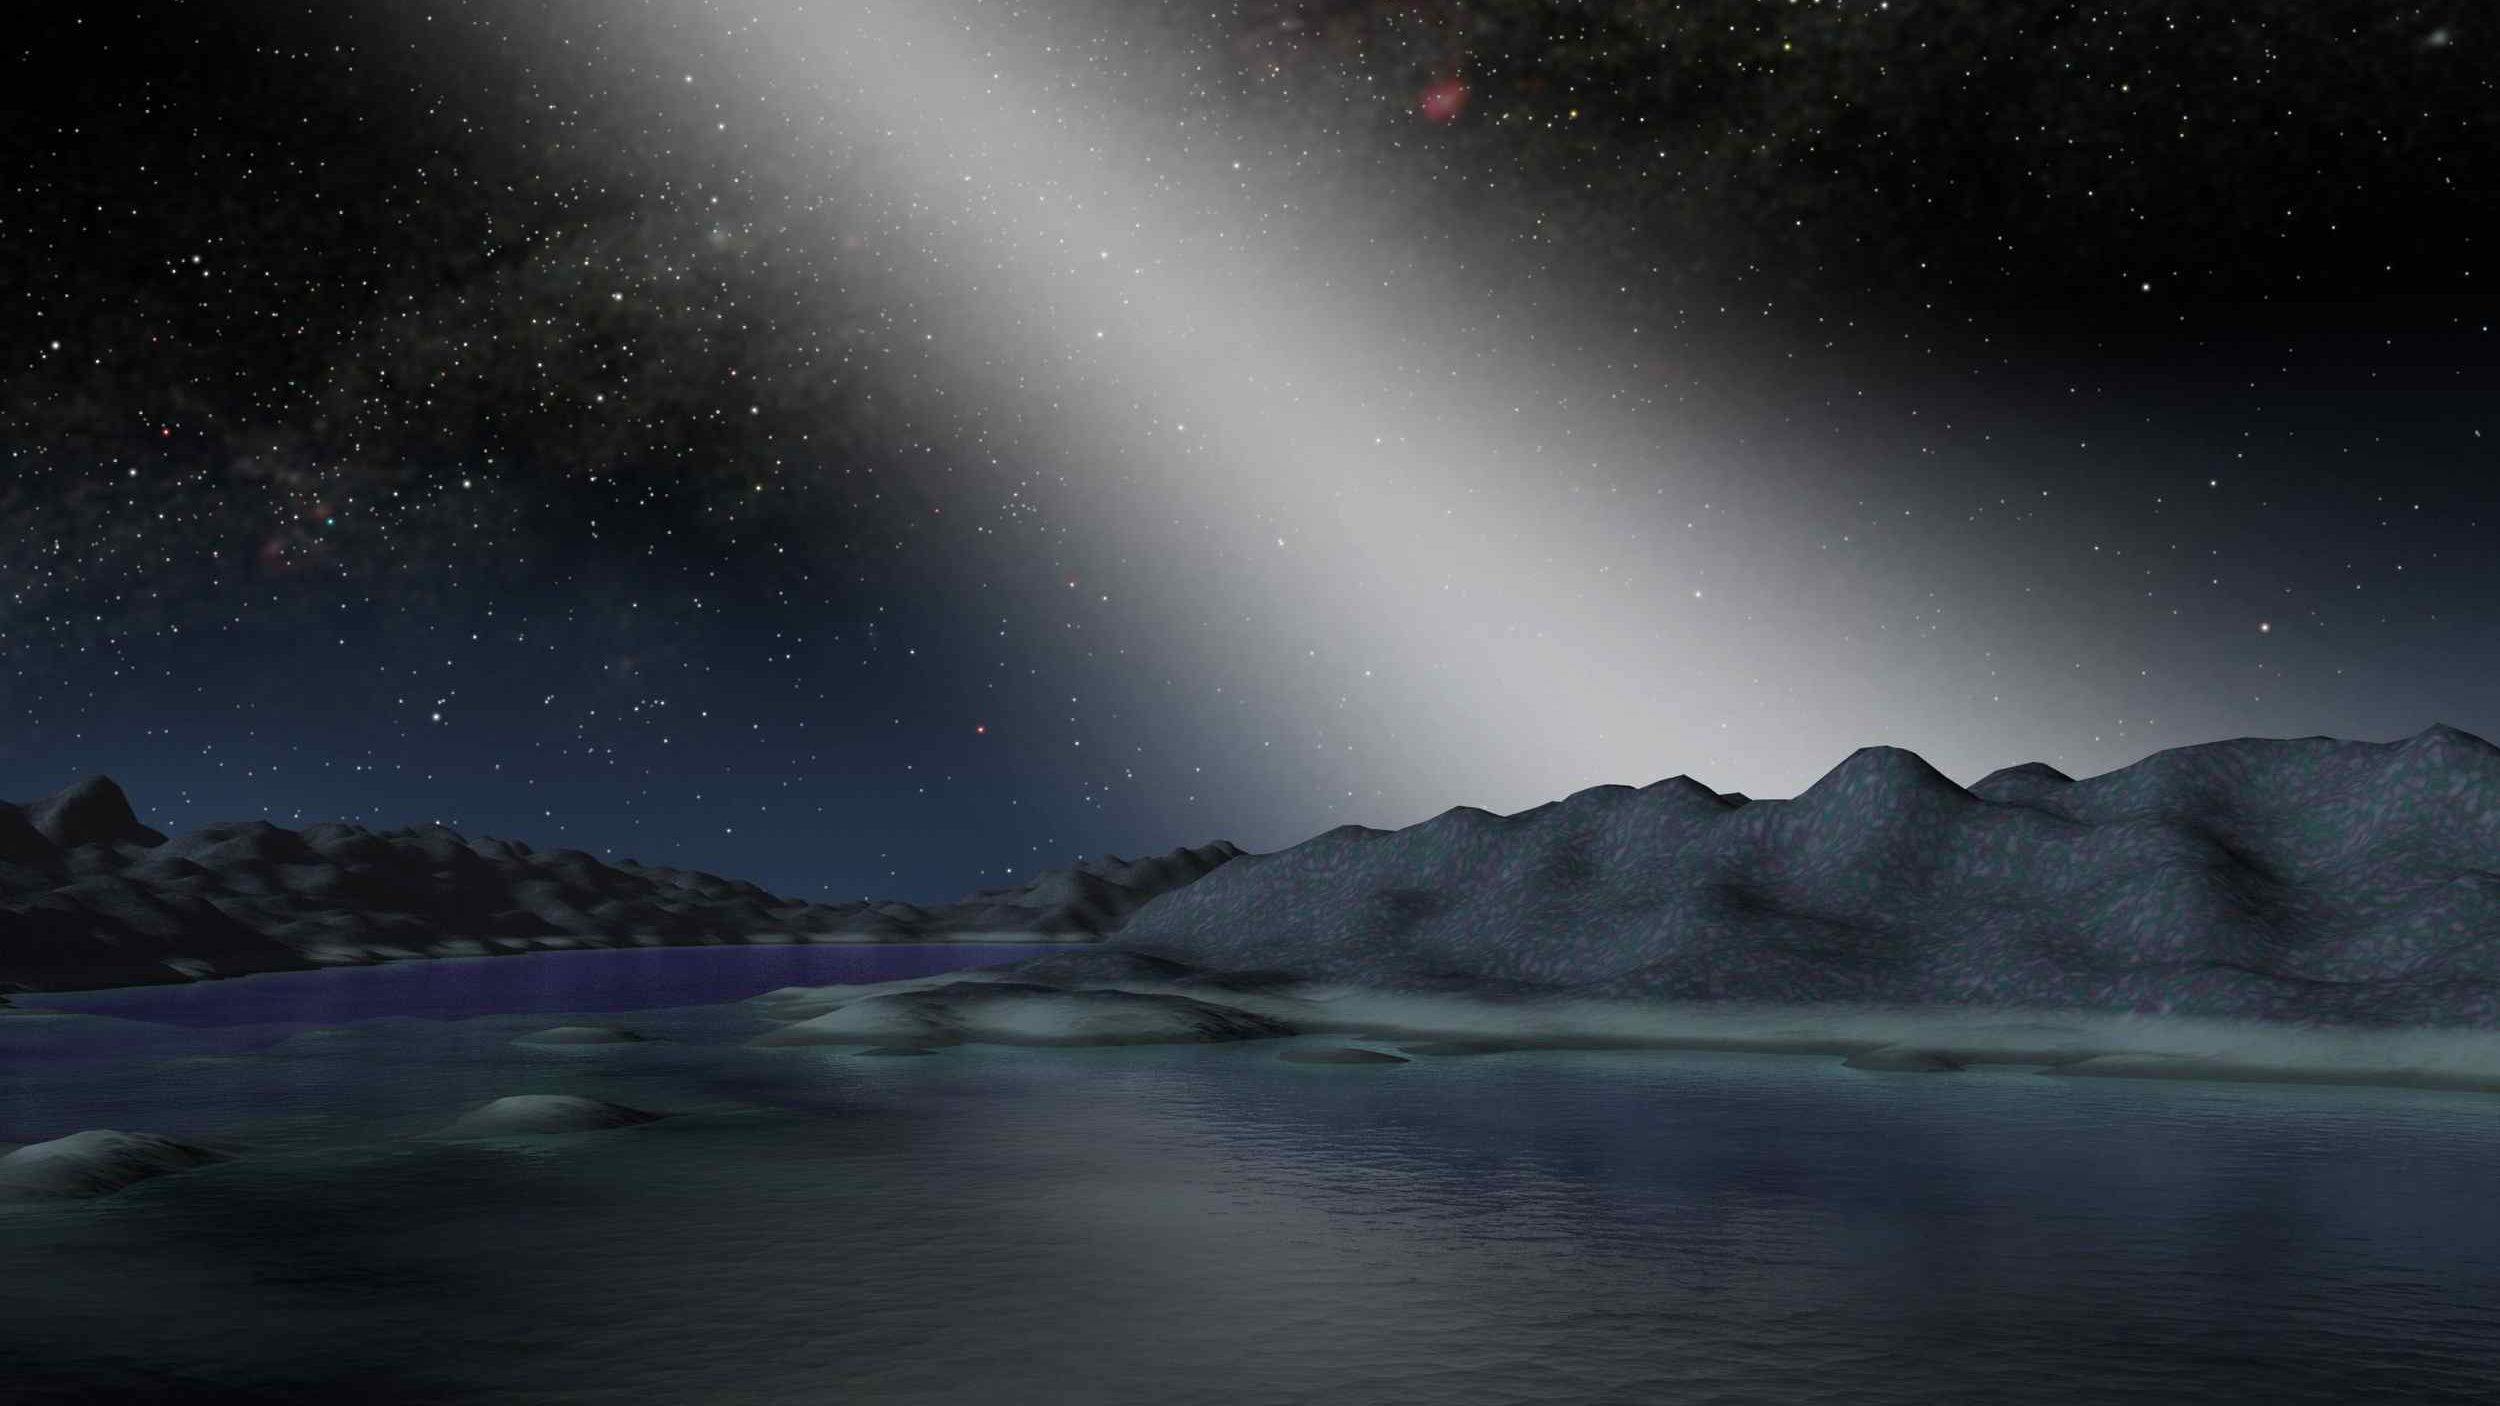 This artist's illustration shows what the sky might look like from a planet in a particularly dusty star system. Dust that orbits a star in the plane of the system is called zodiacal dust, and the light reflected and scattered by that dust is called zodiacal light. Image Credit: NASA / JPL-Caltech